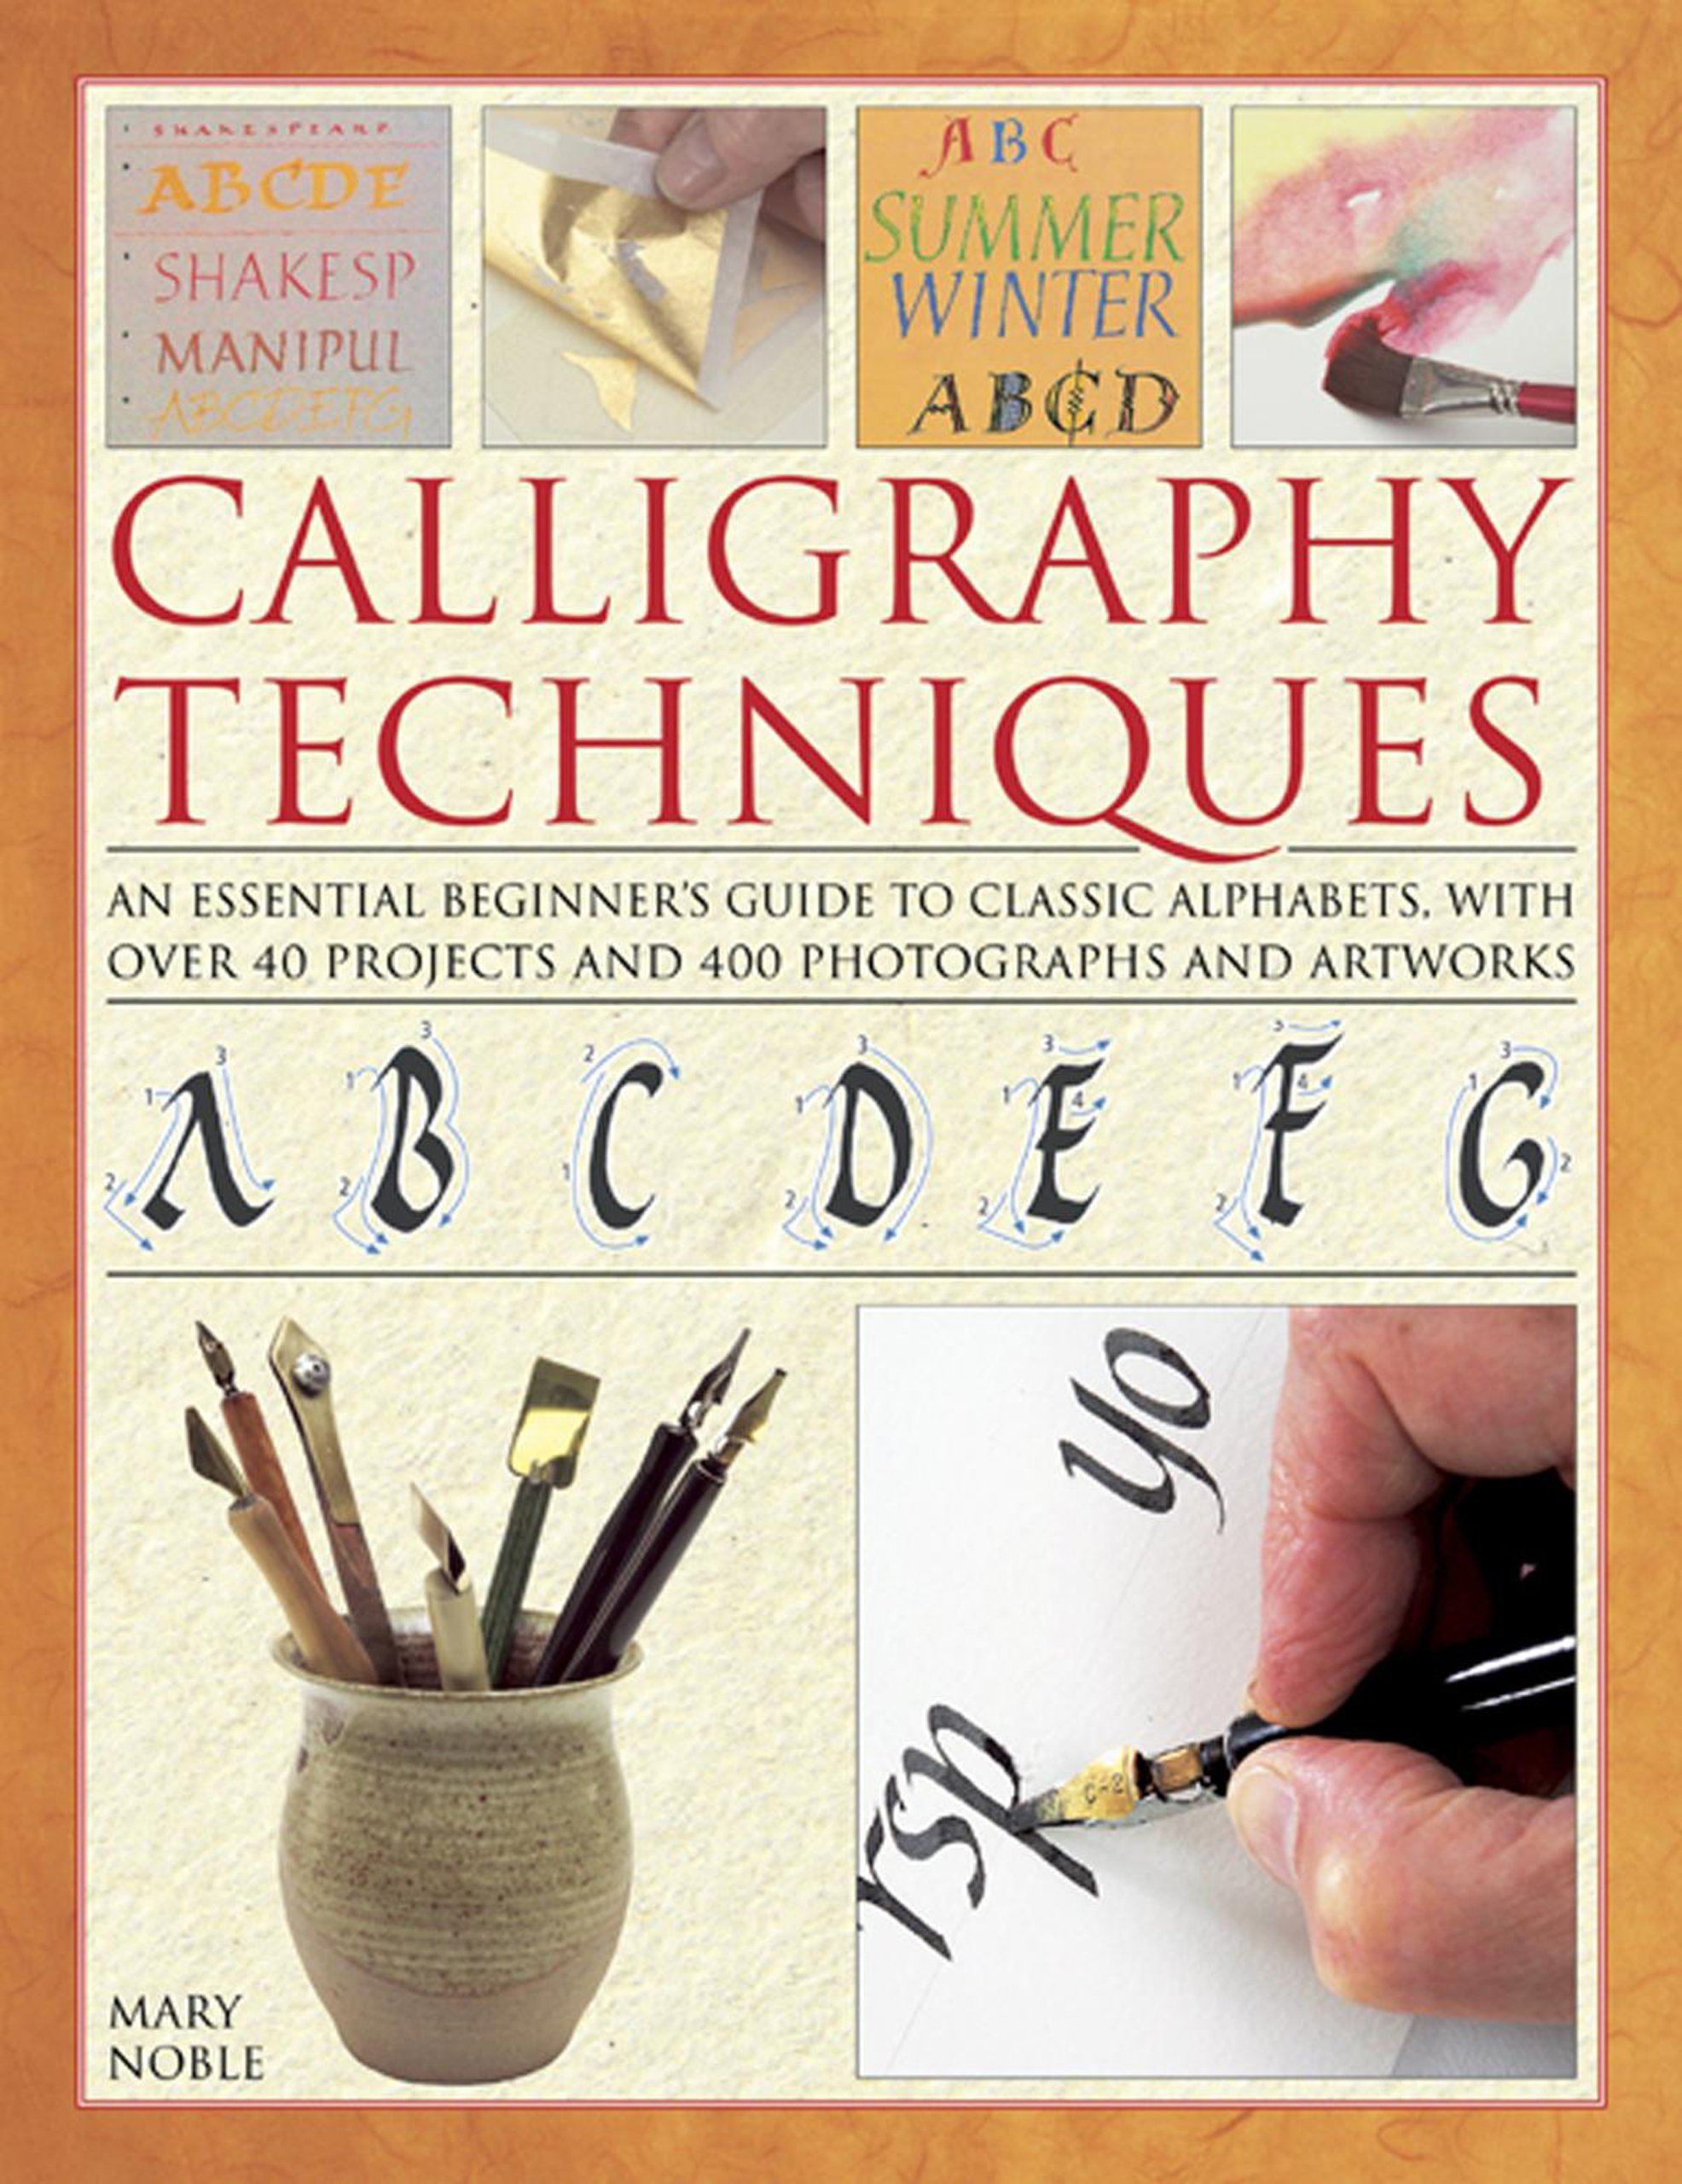 Calligraphy Techniques: An essential beginner's guide to classic alphabets, with over 40 projects and 400 photographs and artworks Text fb2 ebook